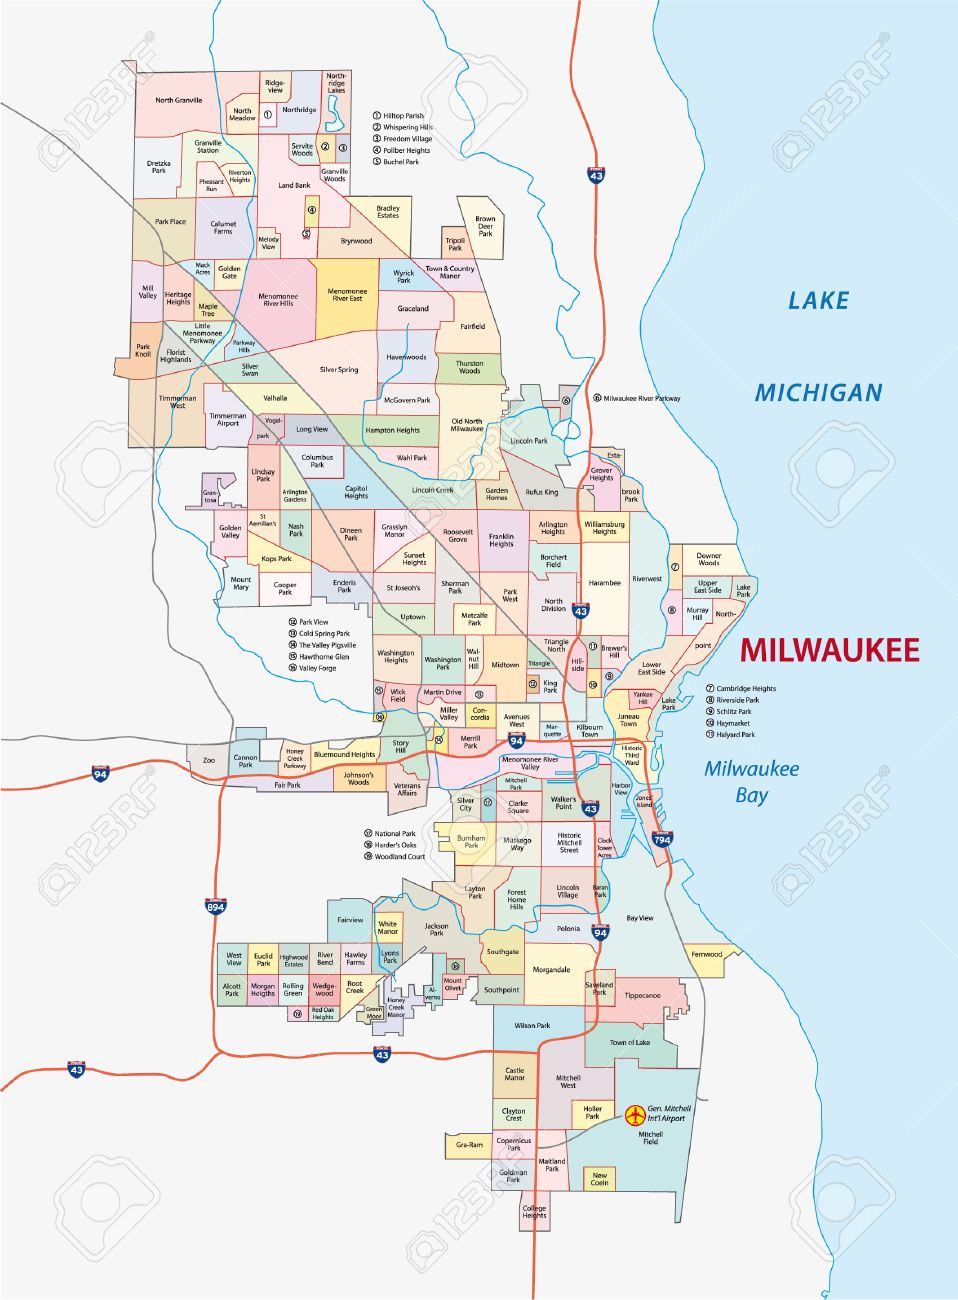 Milwaukee Neighborhood Map Milwaukee Neighborhood Map Royalty Free Cliparts, Vectors, And